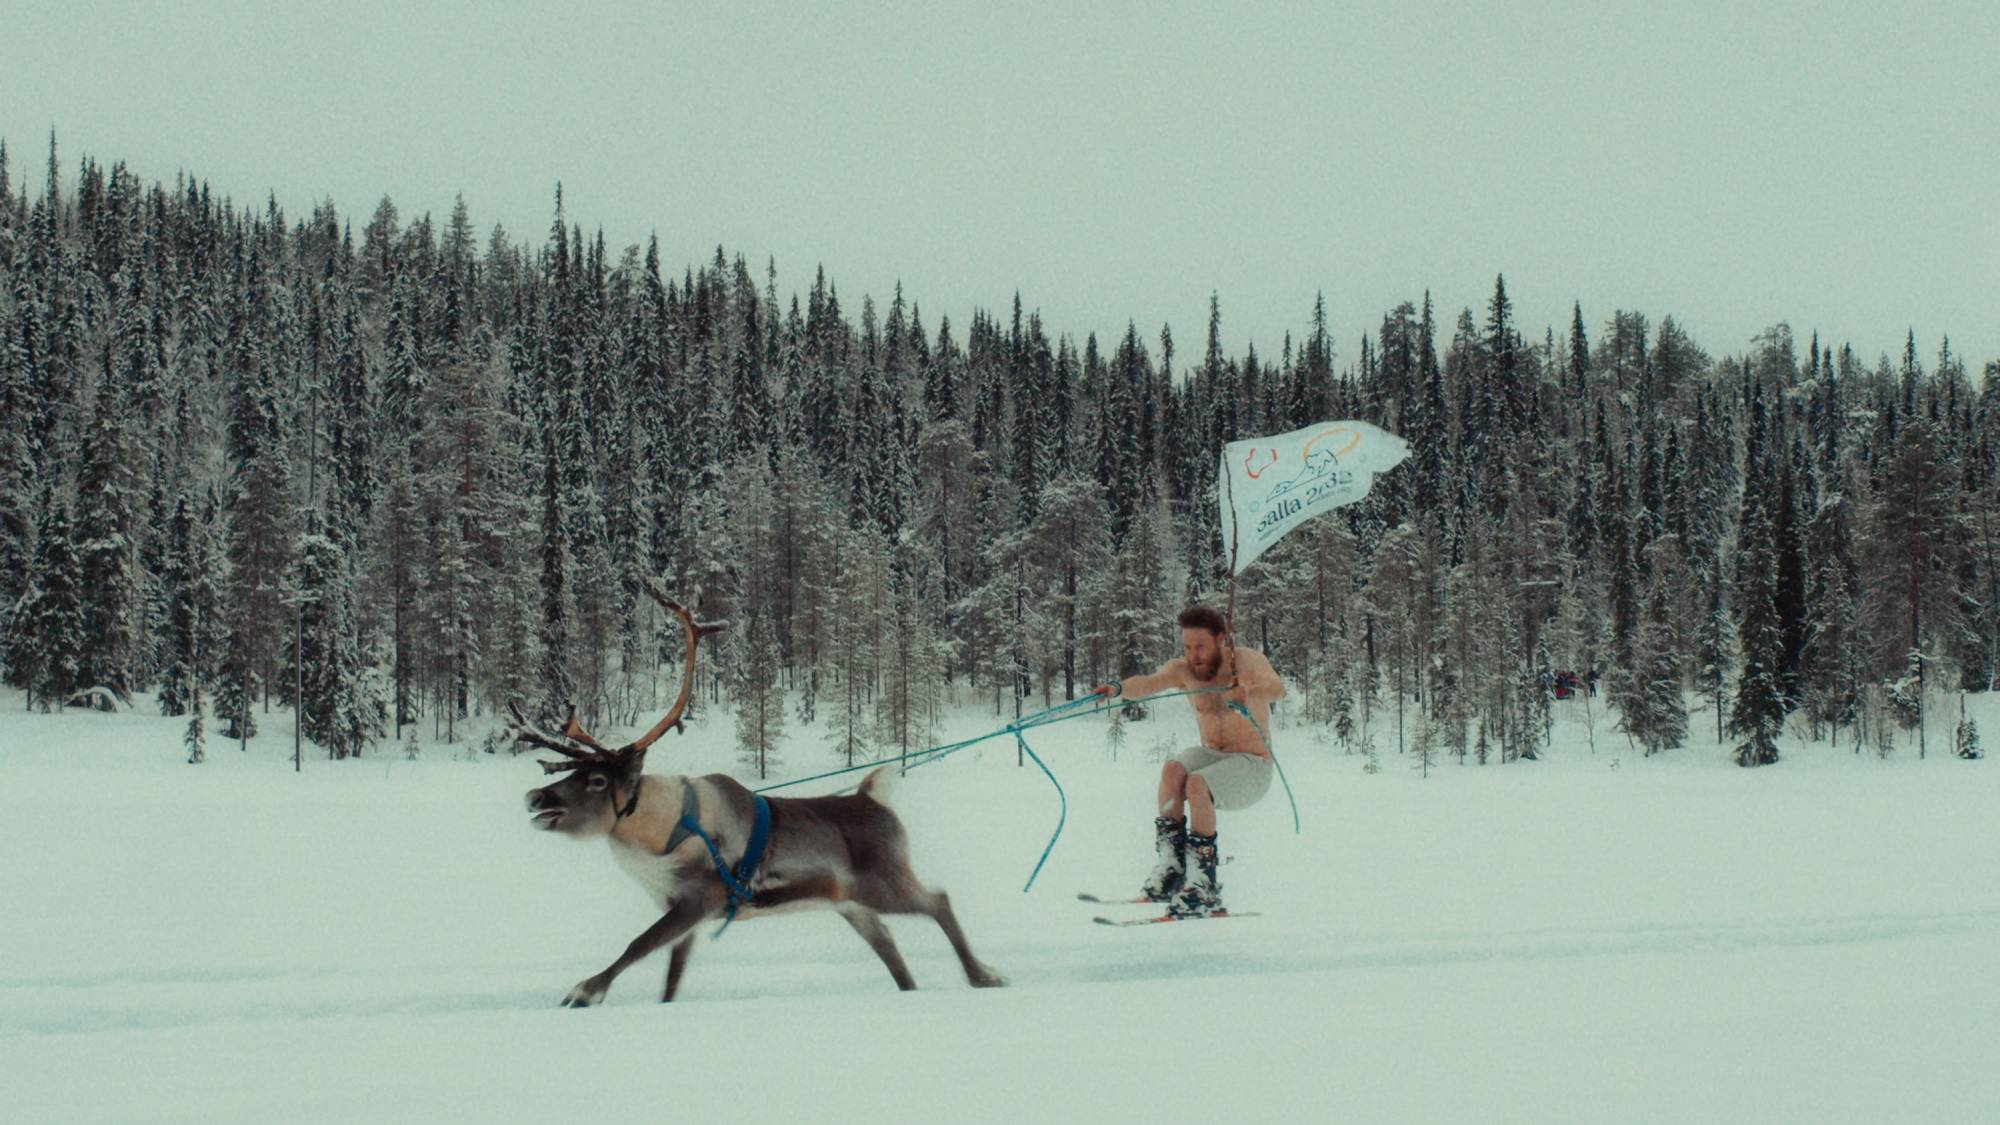 half-naked man reindeer-skiing with a flag